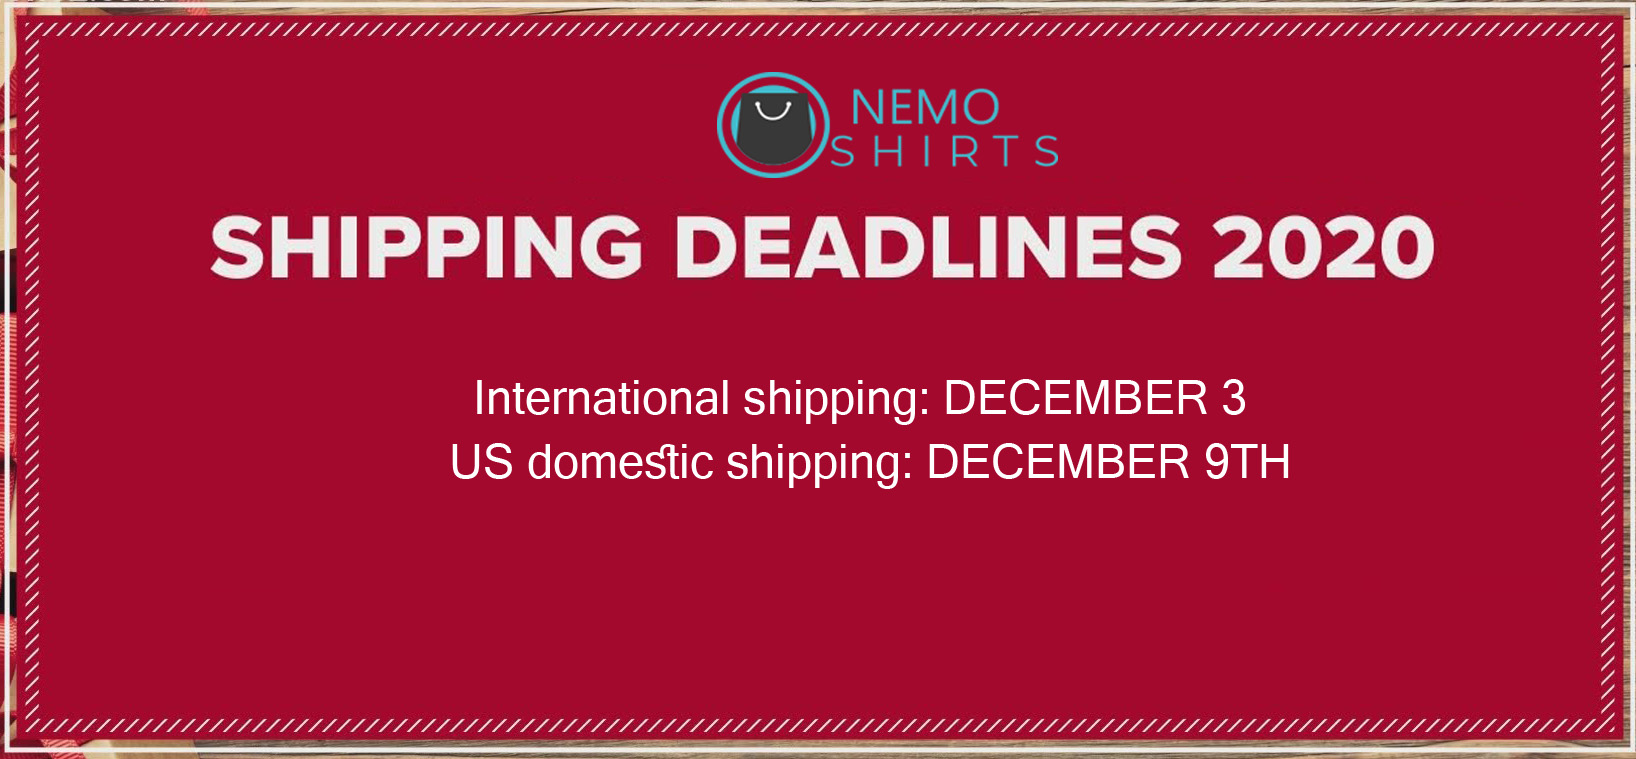 Deadlines shipping time 2020 from Nemoshirt